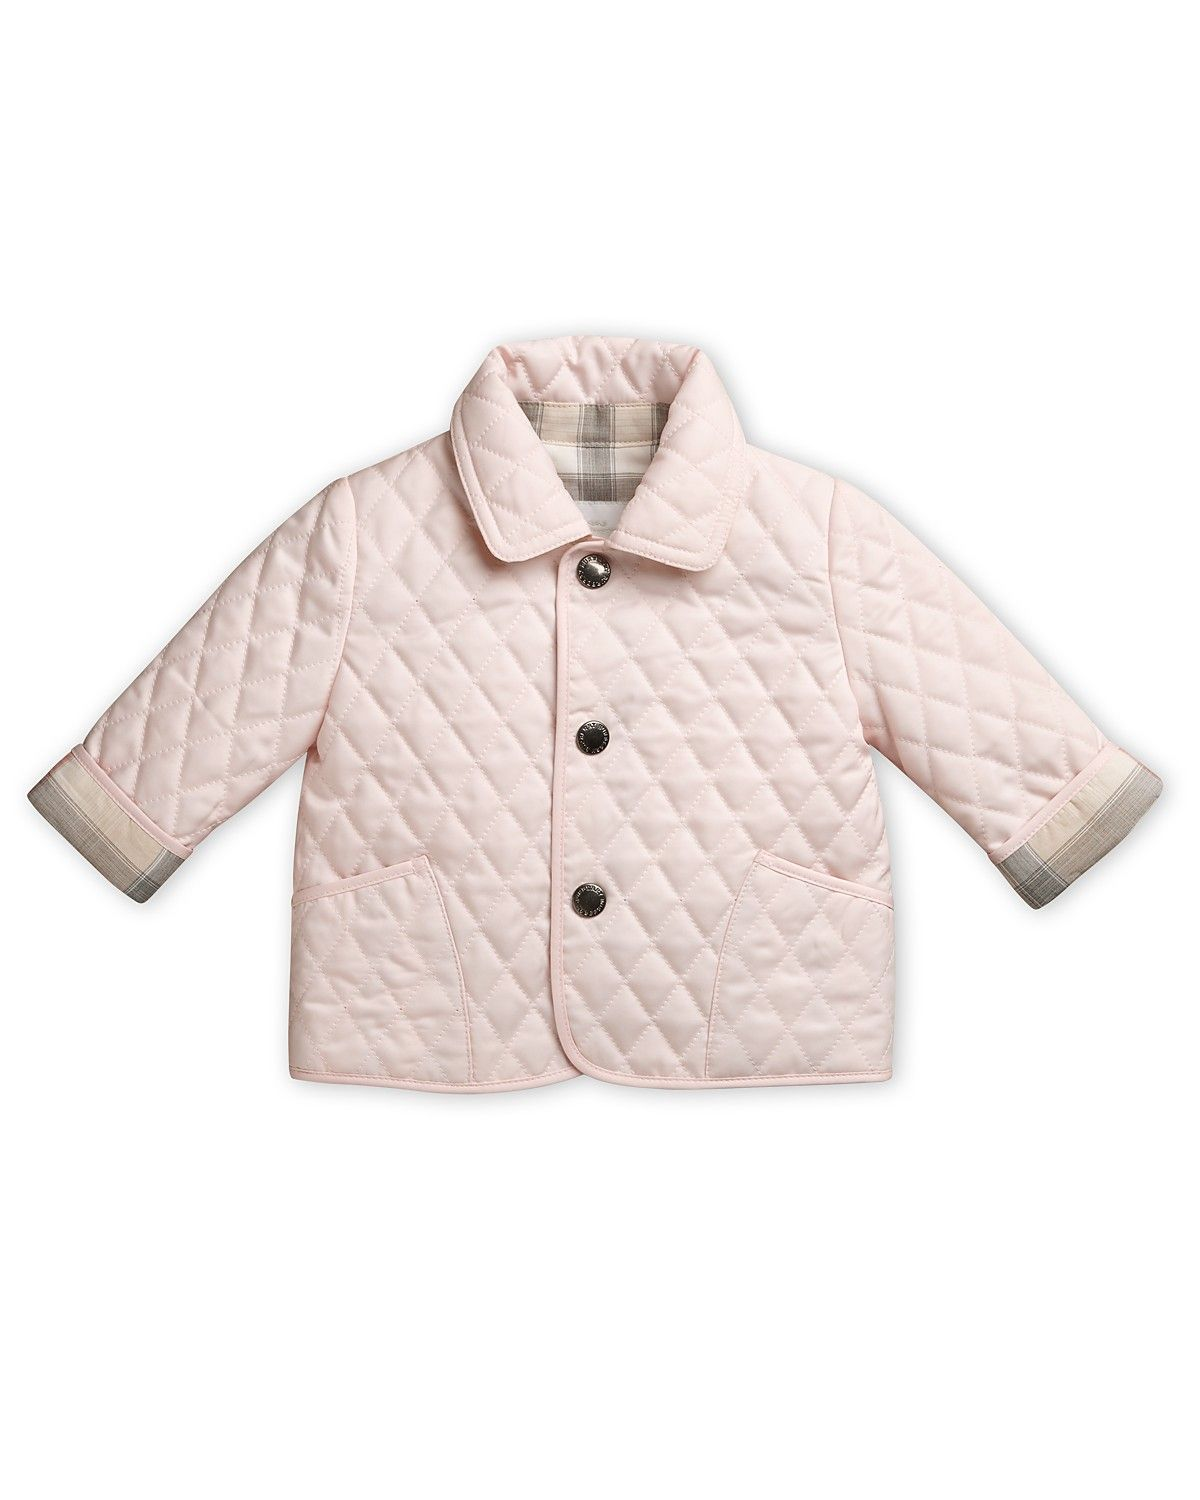 Burberry Infant Girls' Colin Quilted Jacket – Sizes 6 24